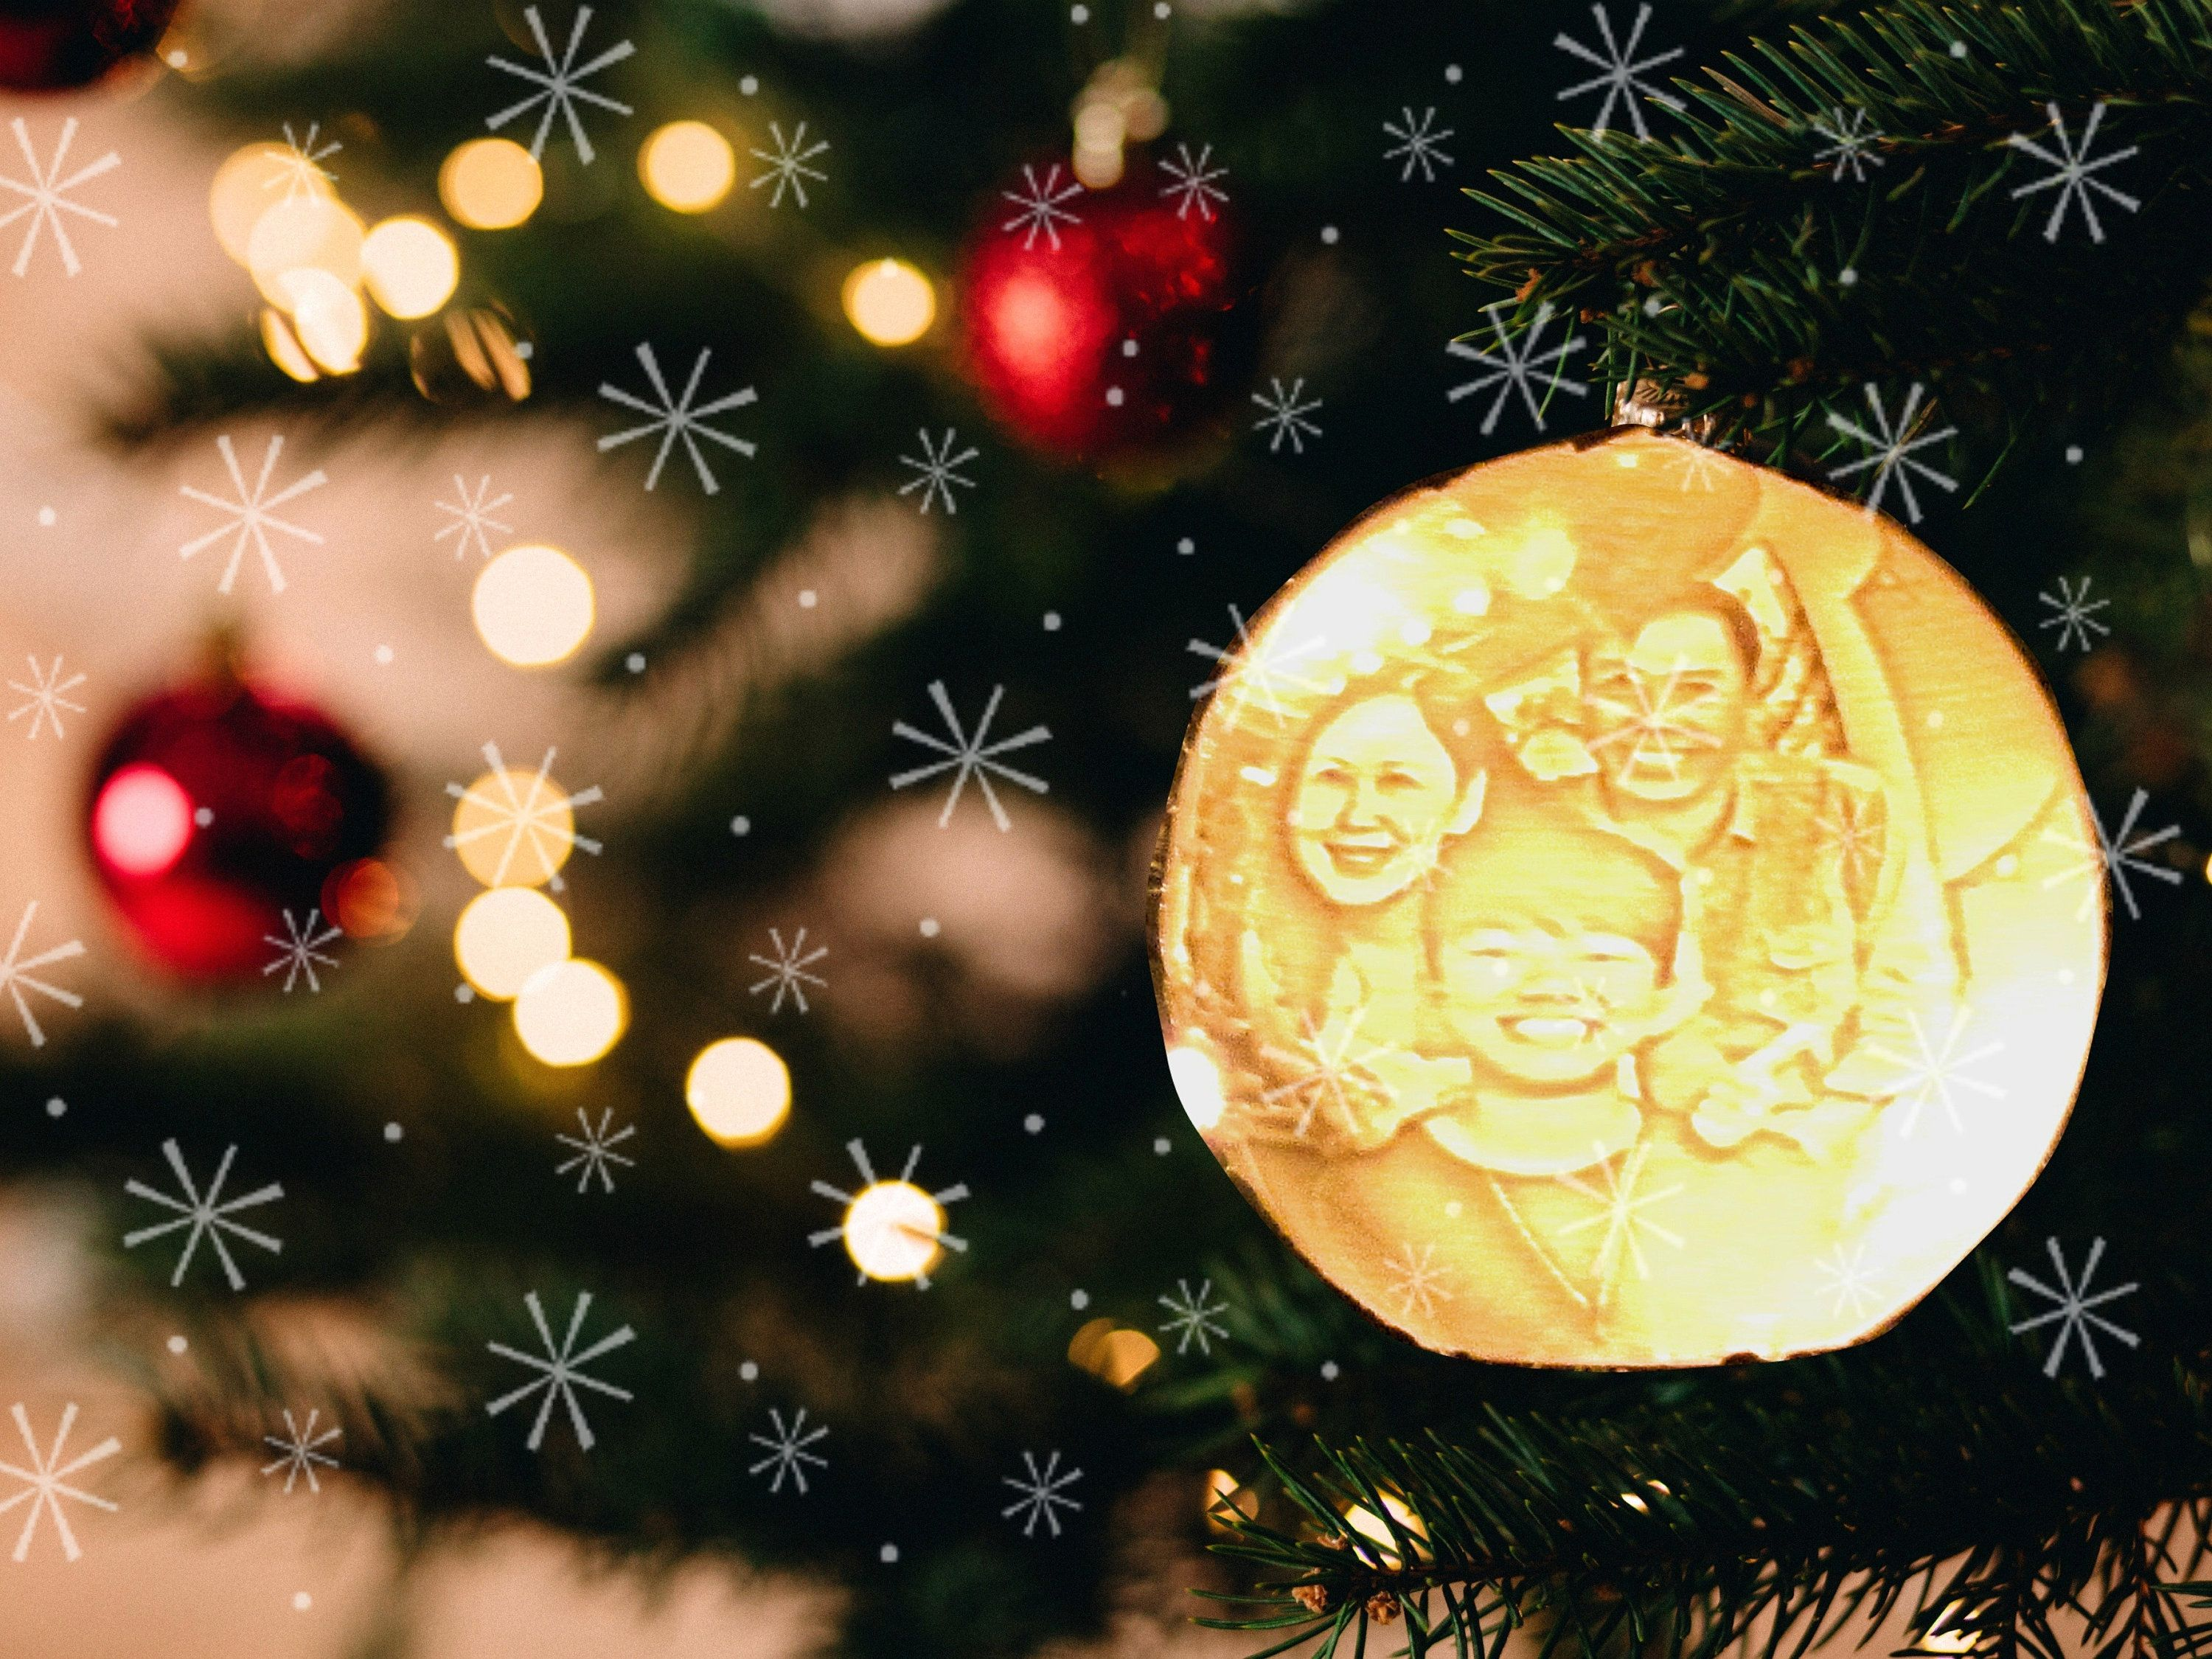 Custom Photo Portrait Ornament Ball Personalized Christmas Tree Decorations 3d Printed Holiday Gifts Lithophane Lamp Led Night Light Personalised Christmas Tree Decorations Personalised Christmas Decorations Photo Christmas Tree